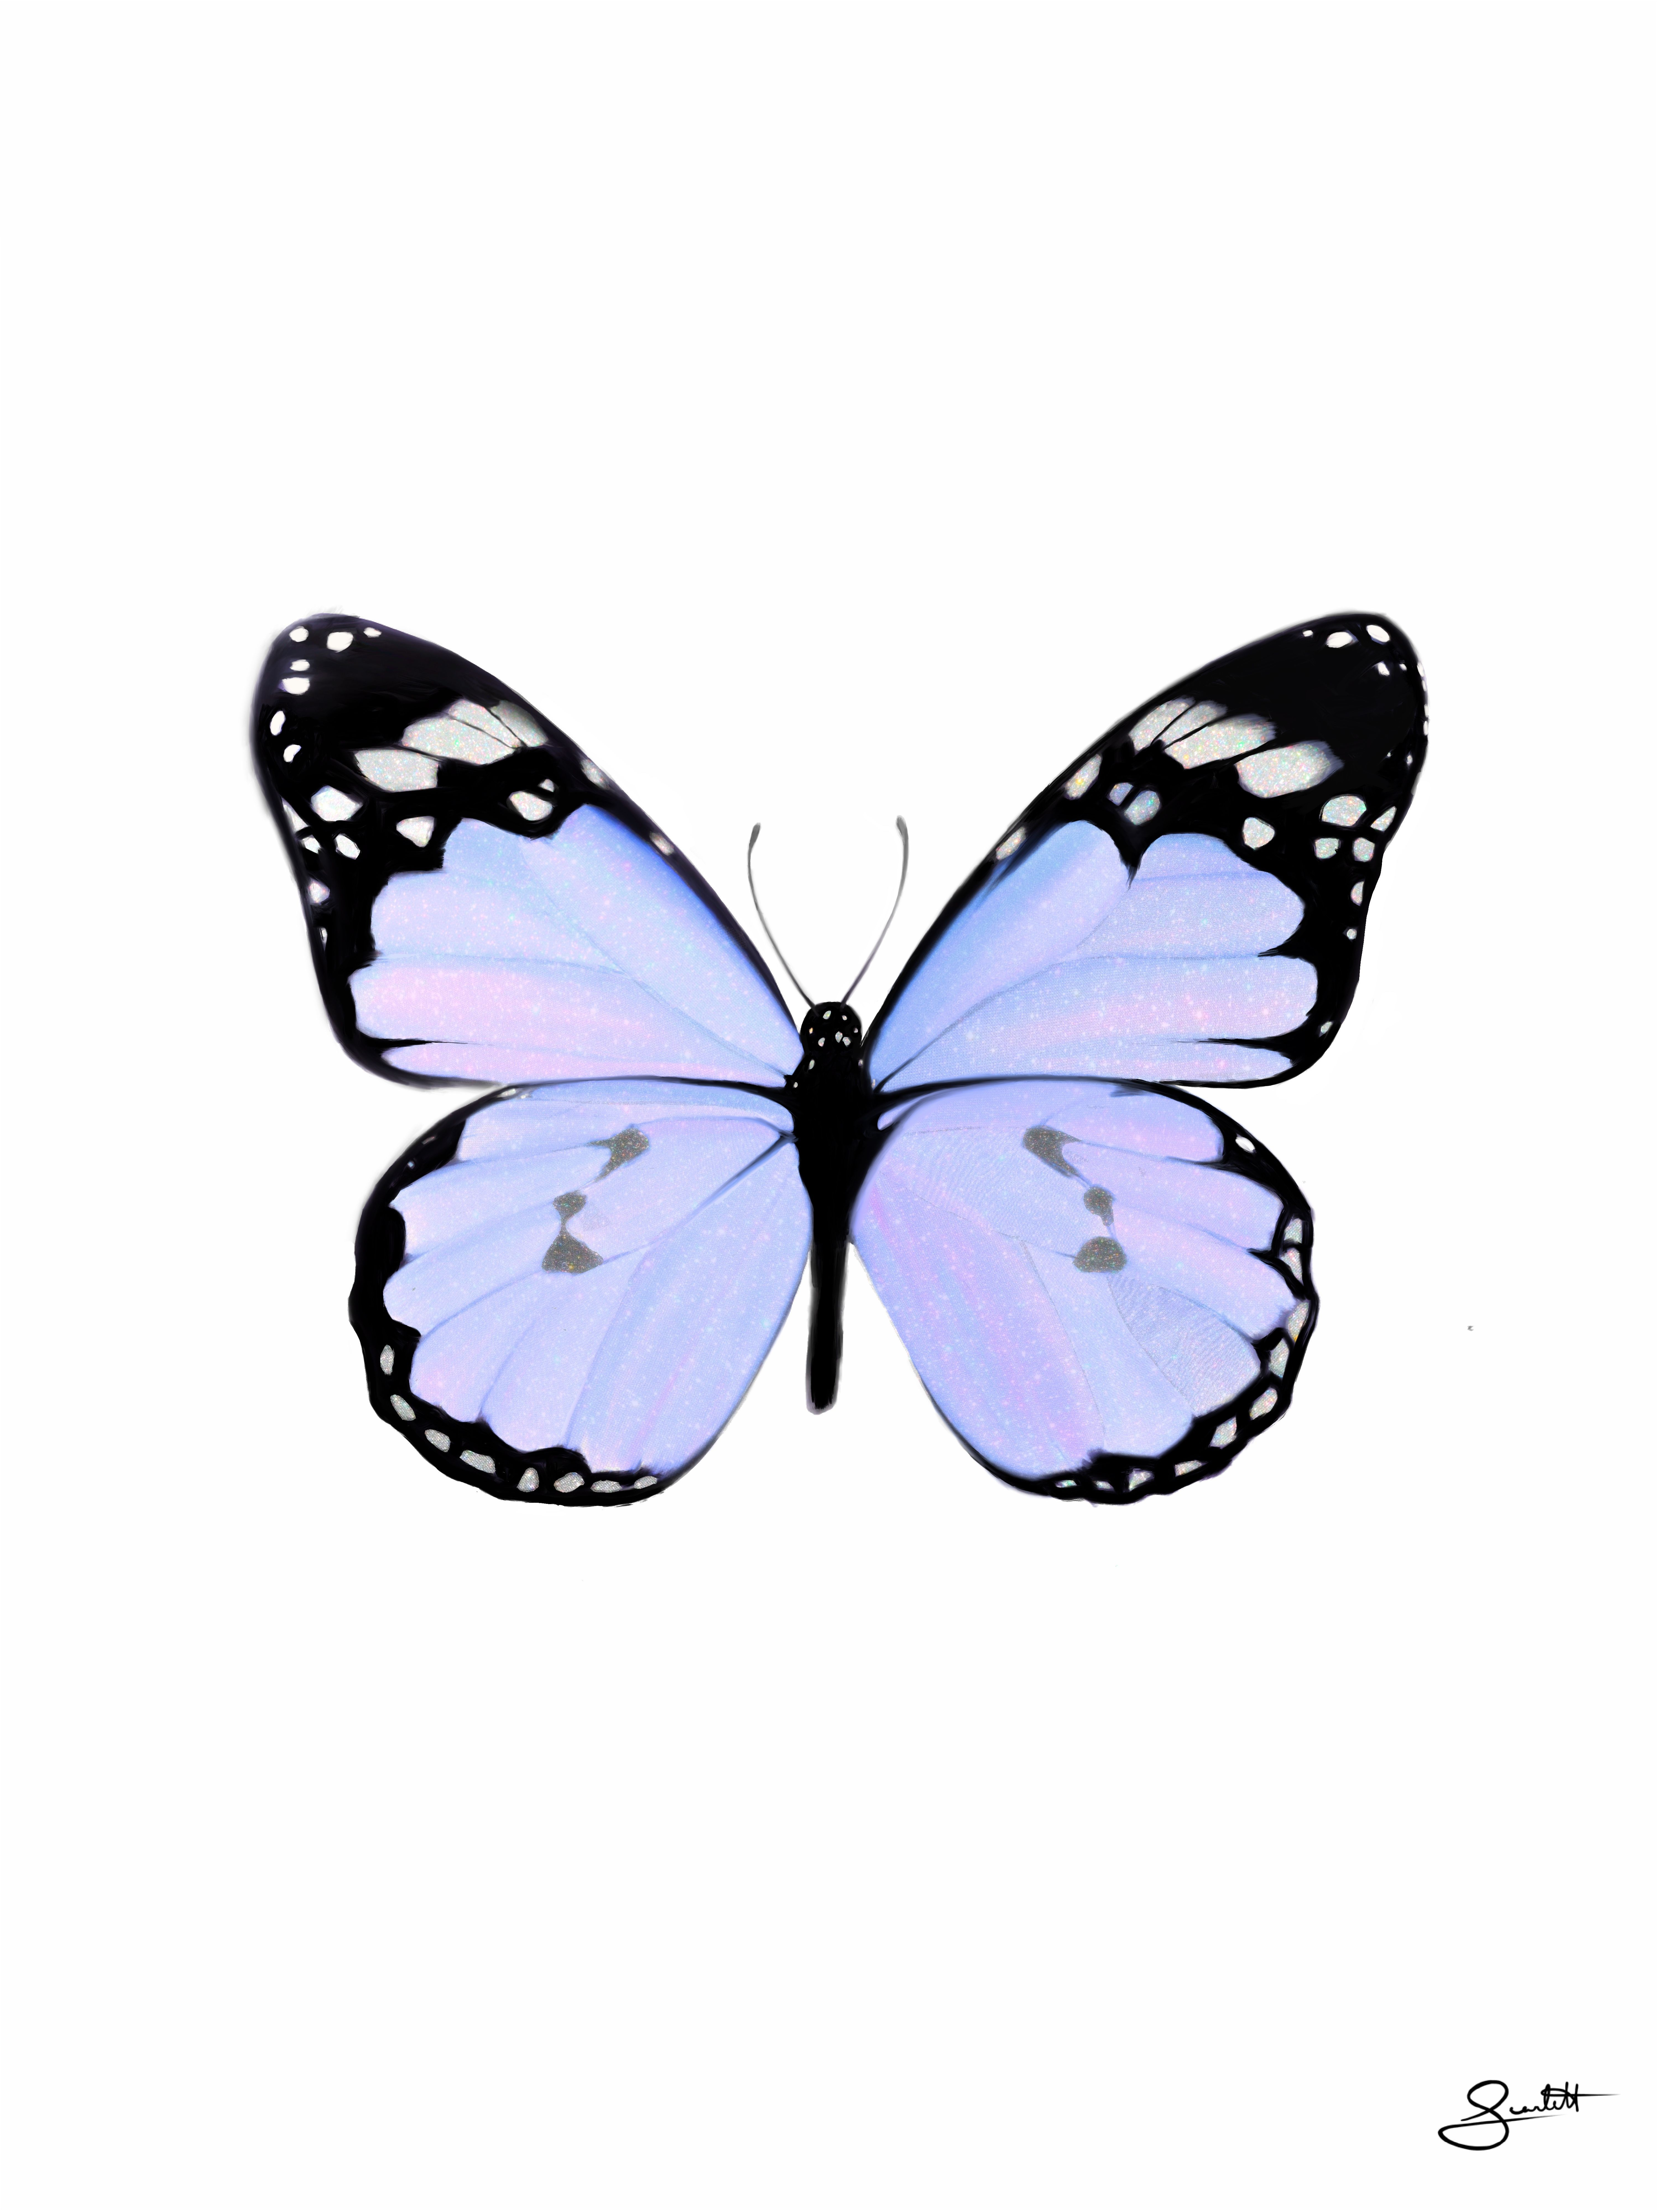 4ff96ab2994b5ae0f84ab9cec331d3c2 » Butterfly Drawing Aesthetic